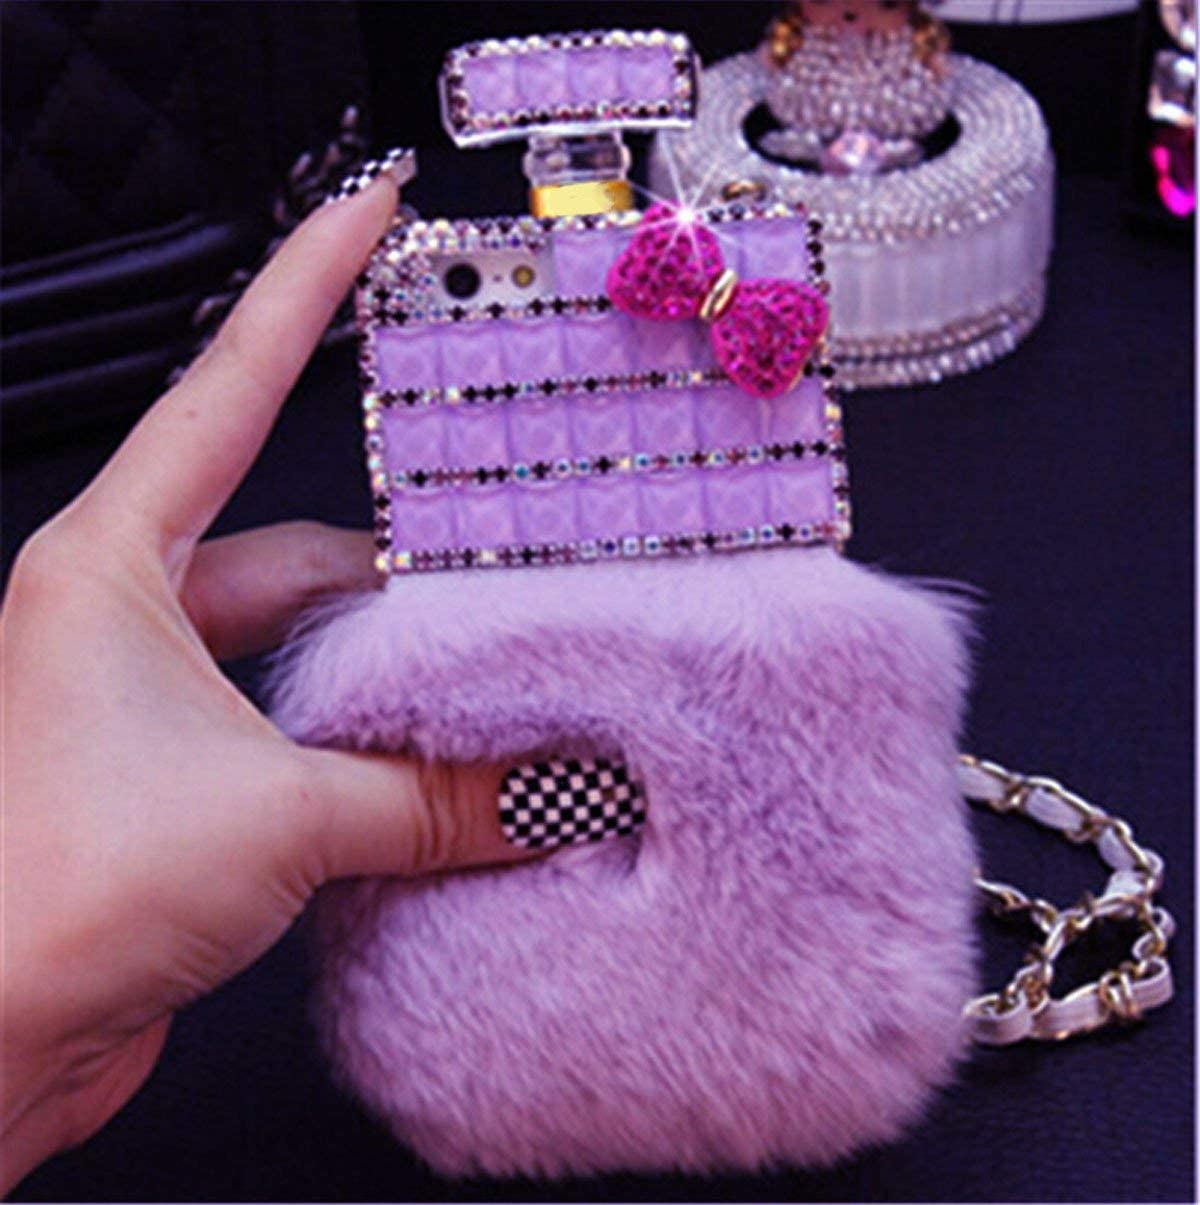 Fusicase for iPhone Xs Max Perfume Case Luxury Shiny Crystal Sparkle Rhinestone Perfume Bottle Cover with Rabbit Fur Bling Diamond Hair Plush Case for iPhone Xs Max with Crossbody Neck Strap Lanyard